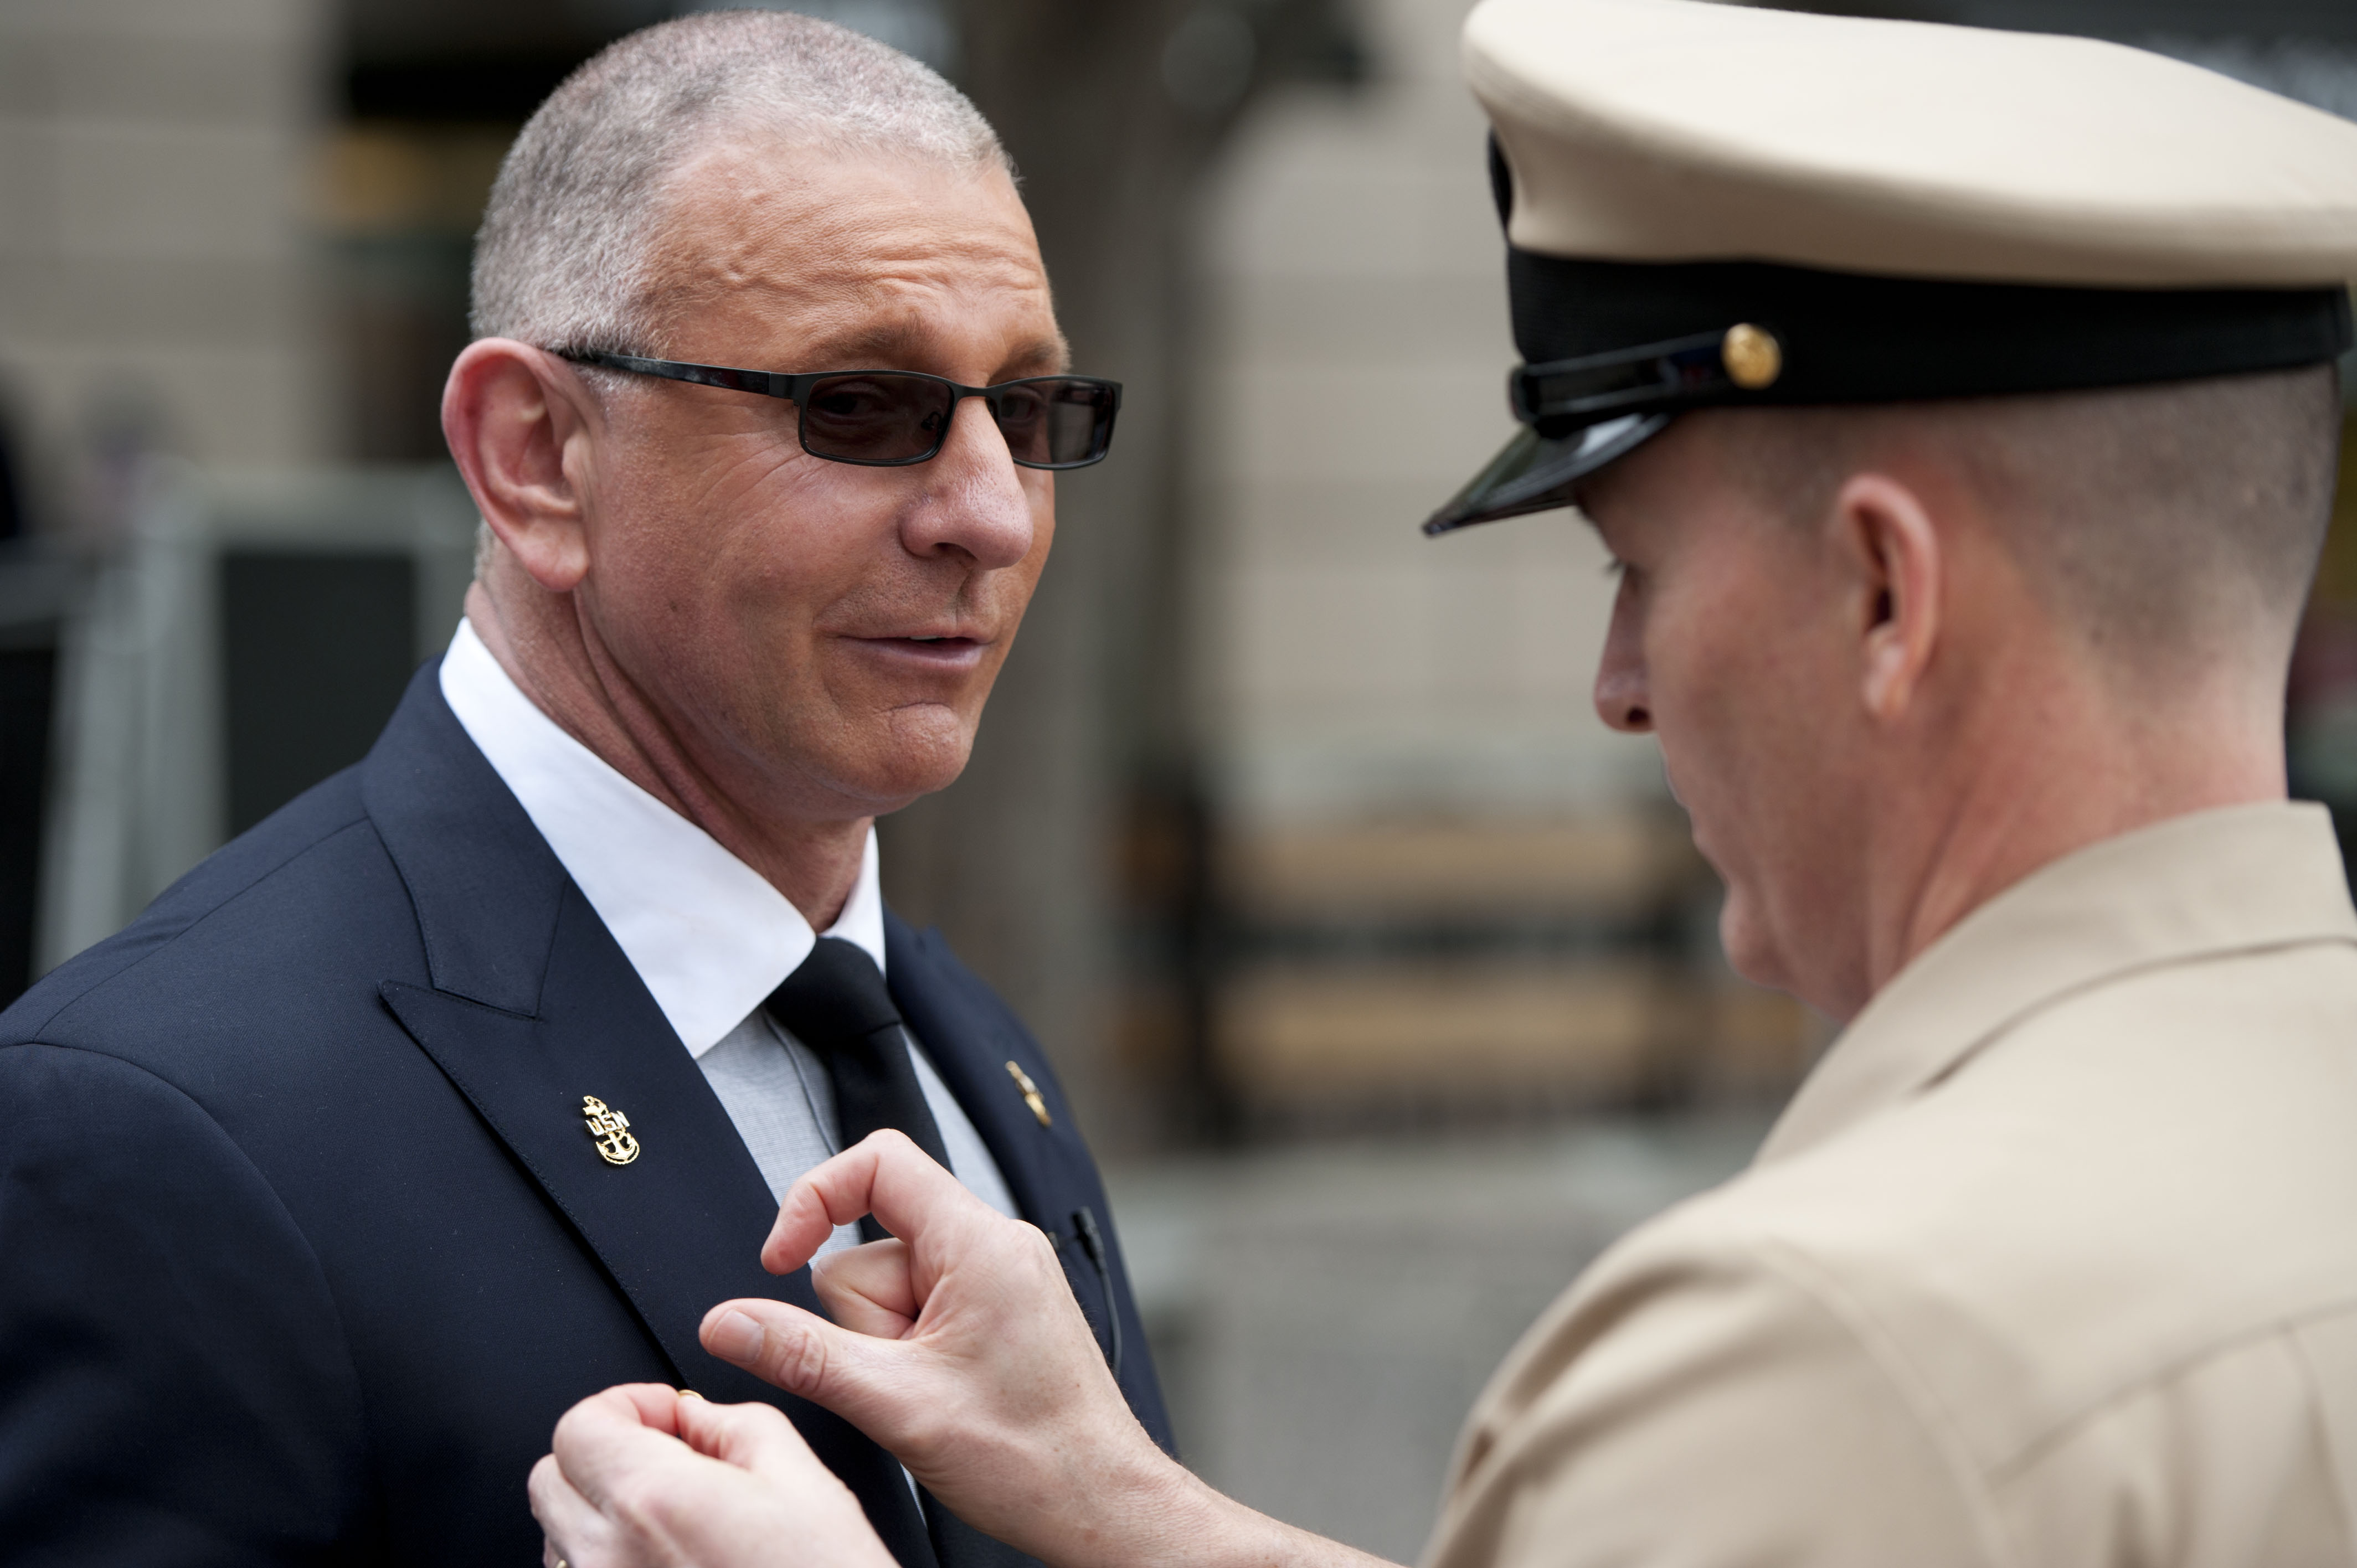 Irvine being made an honorary chief petty officer of the US Navy in May  2015 at Washington, DC.